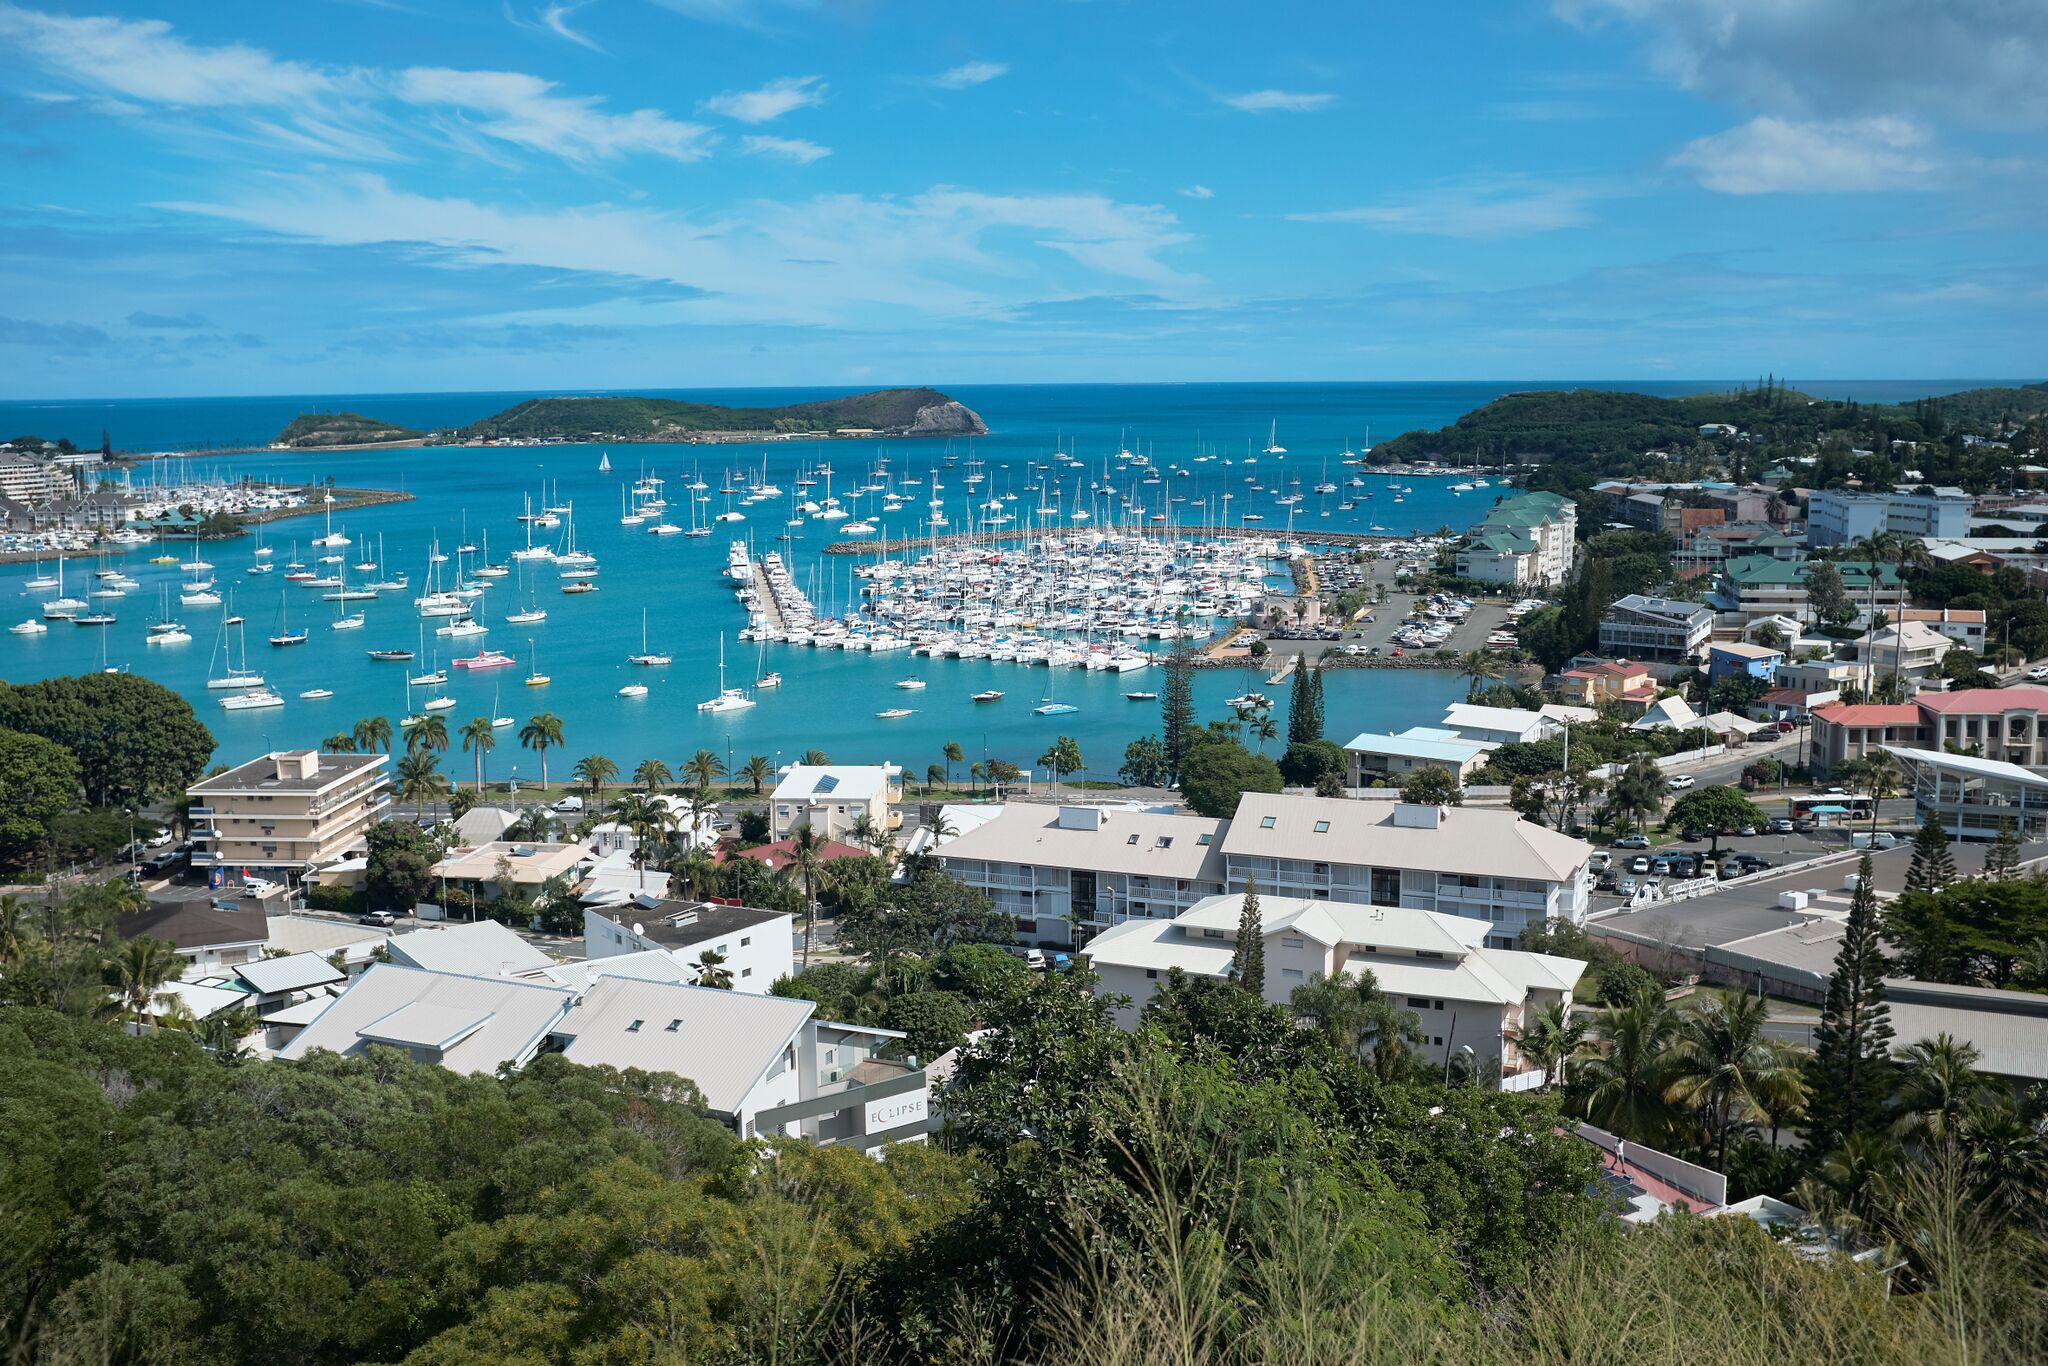 The bay of Noumea with its yachting port in the background.